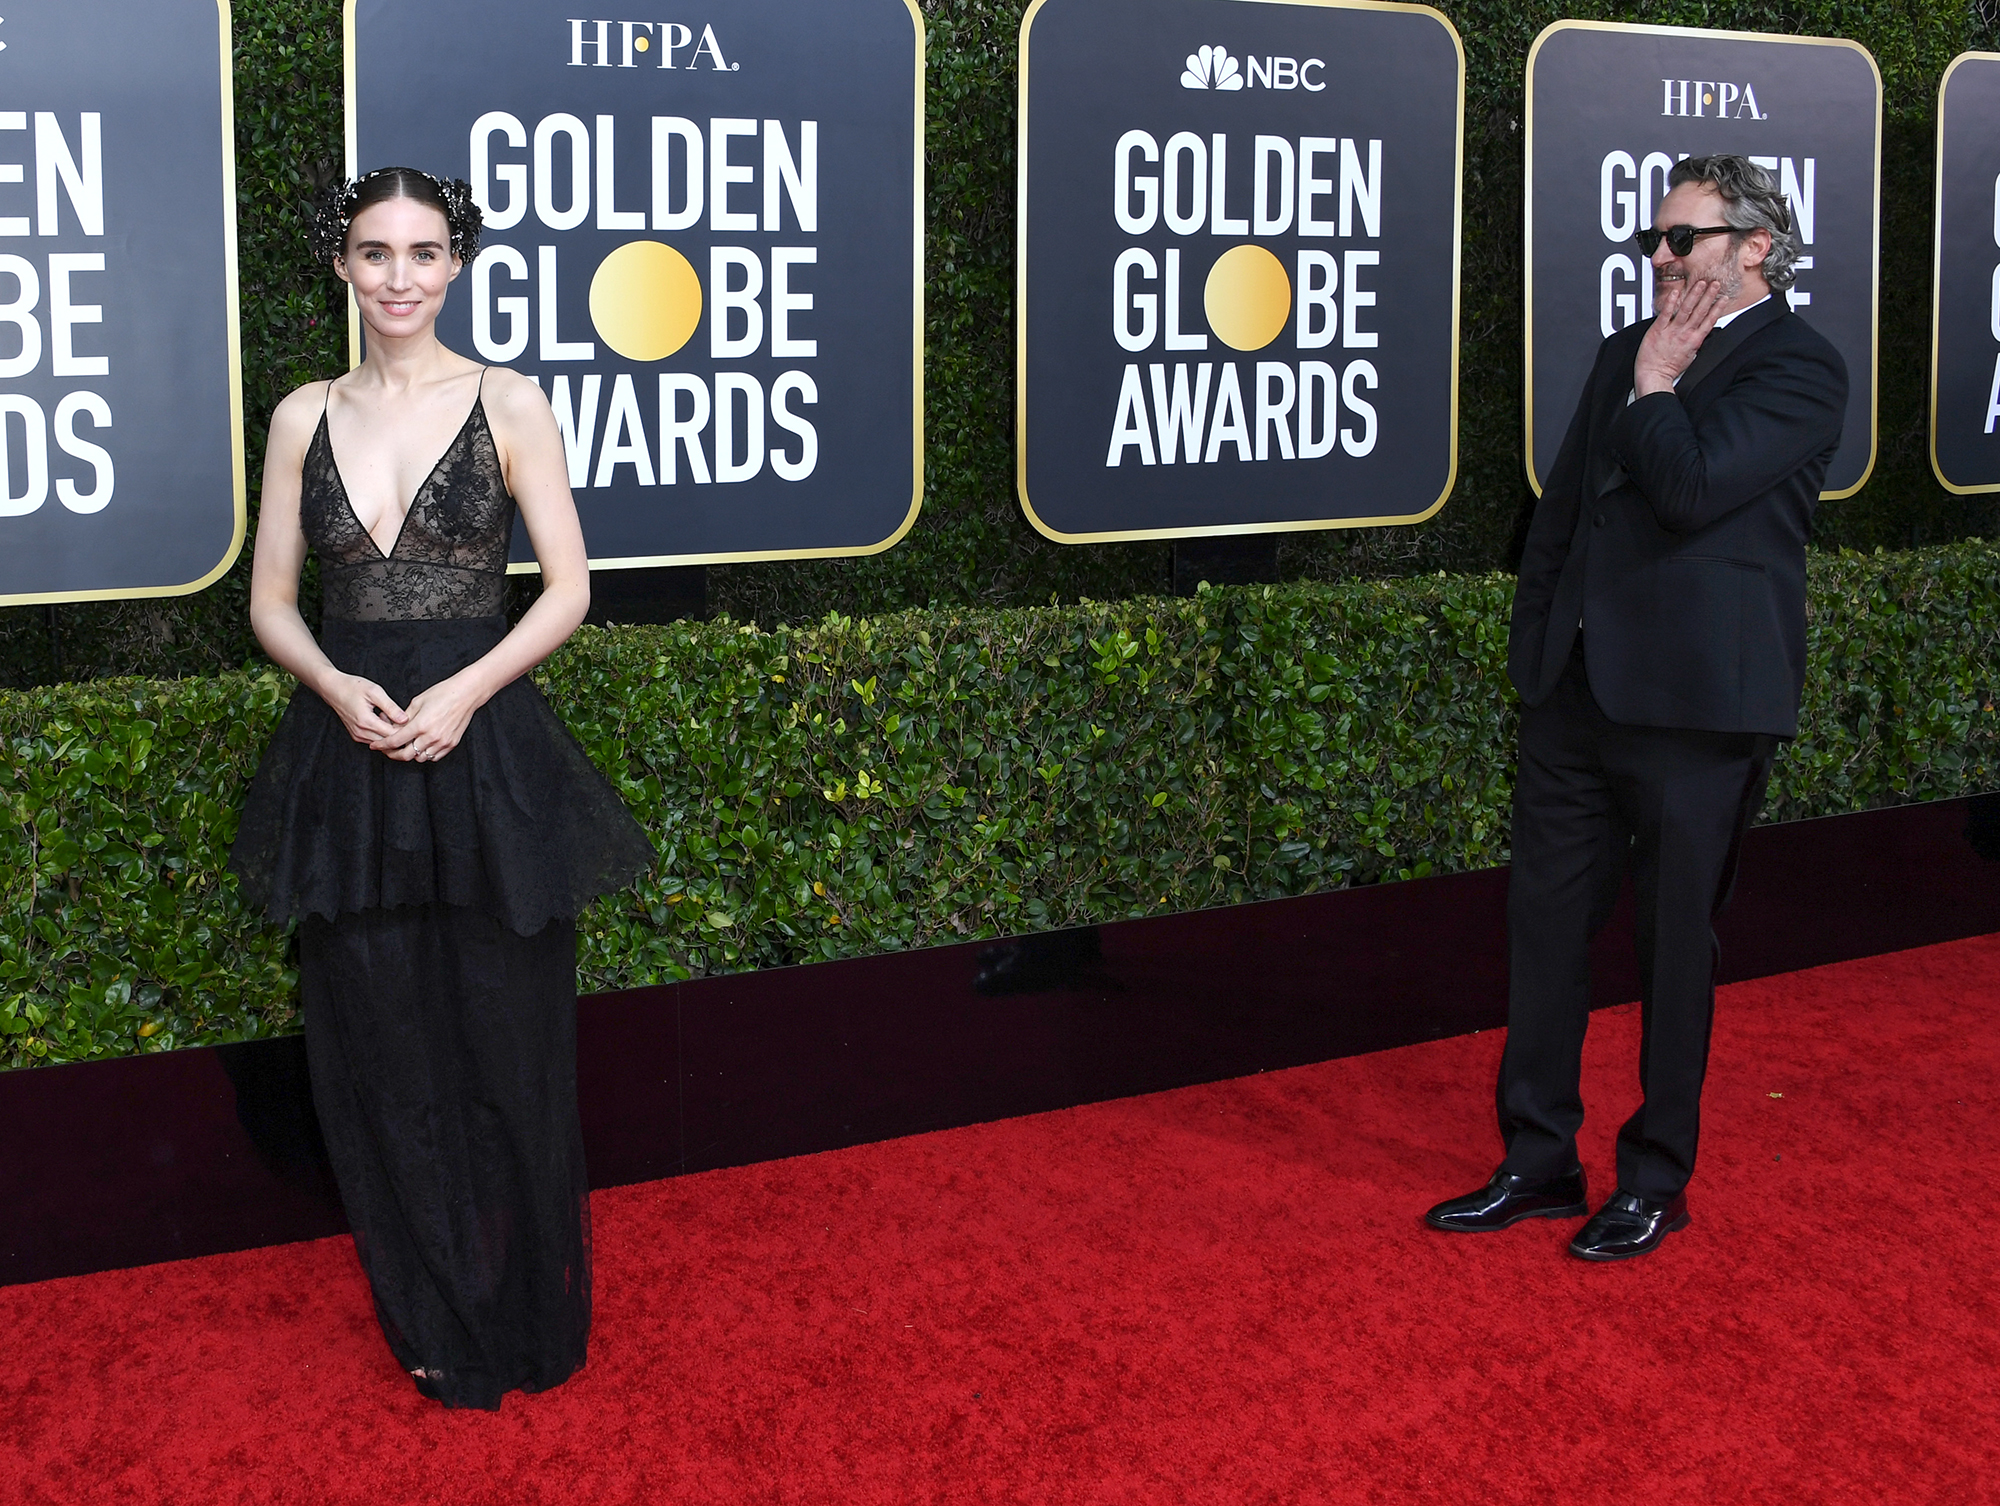 Rooney Mara (L) and Joaquin Phoenix